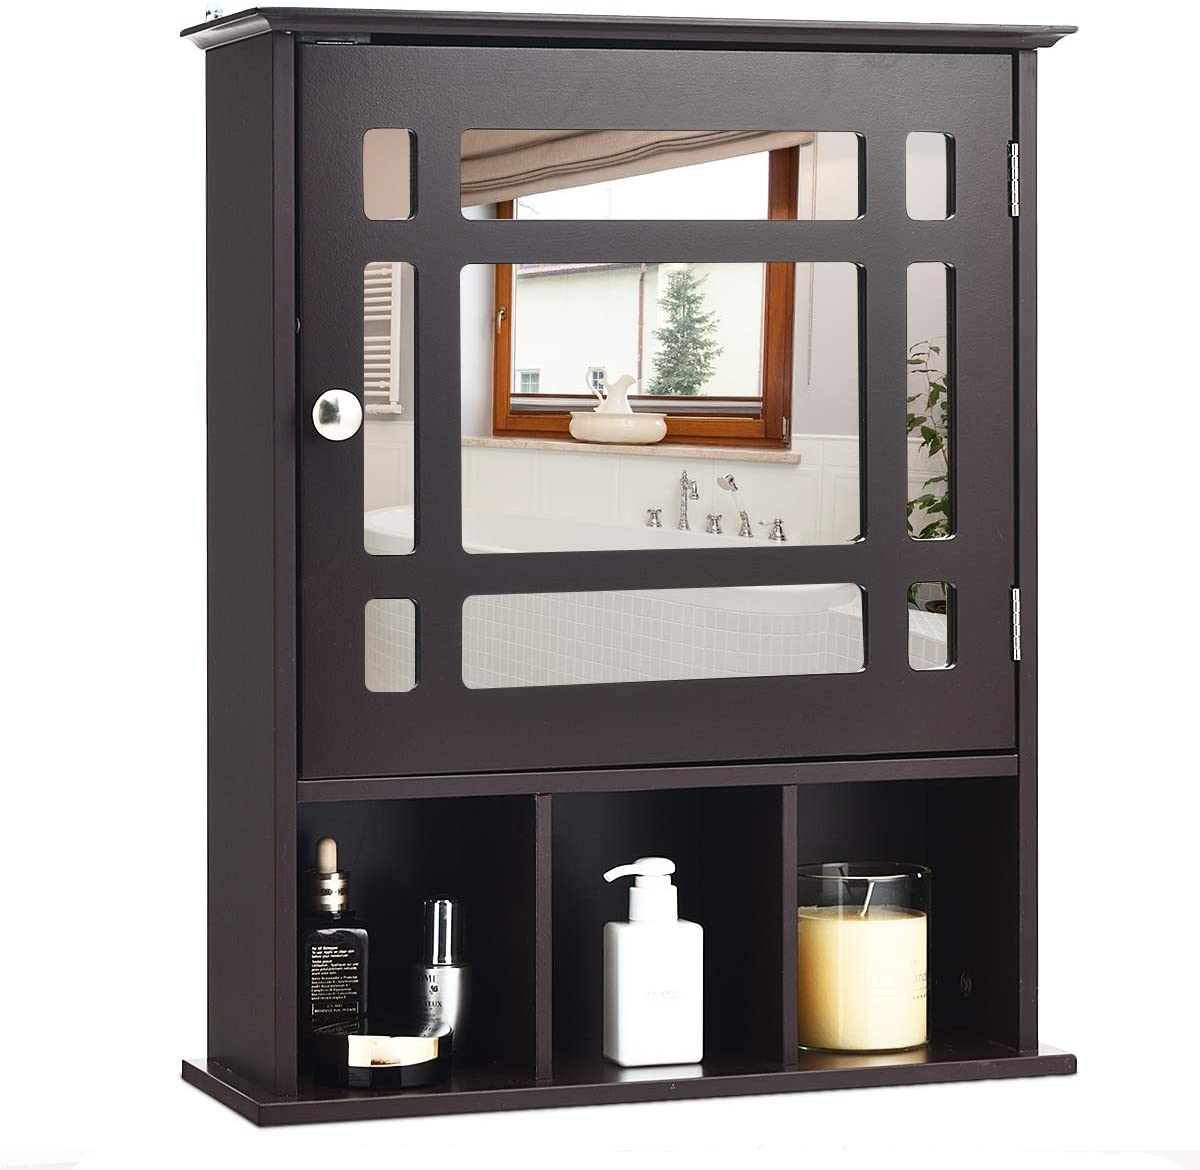 Tangkula Mirrored Medicine Cabinet, Bathroom Wall Mounted Storage Cabinet with Adjustable Shelf and 3 Open Compartments (Espresso)